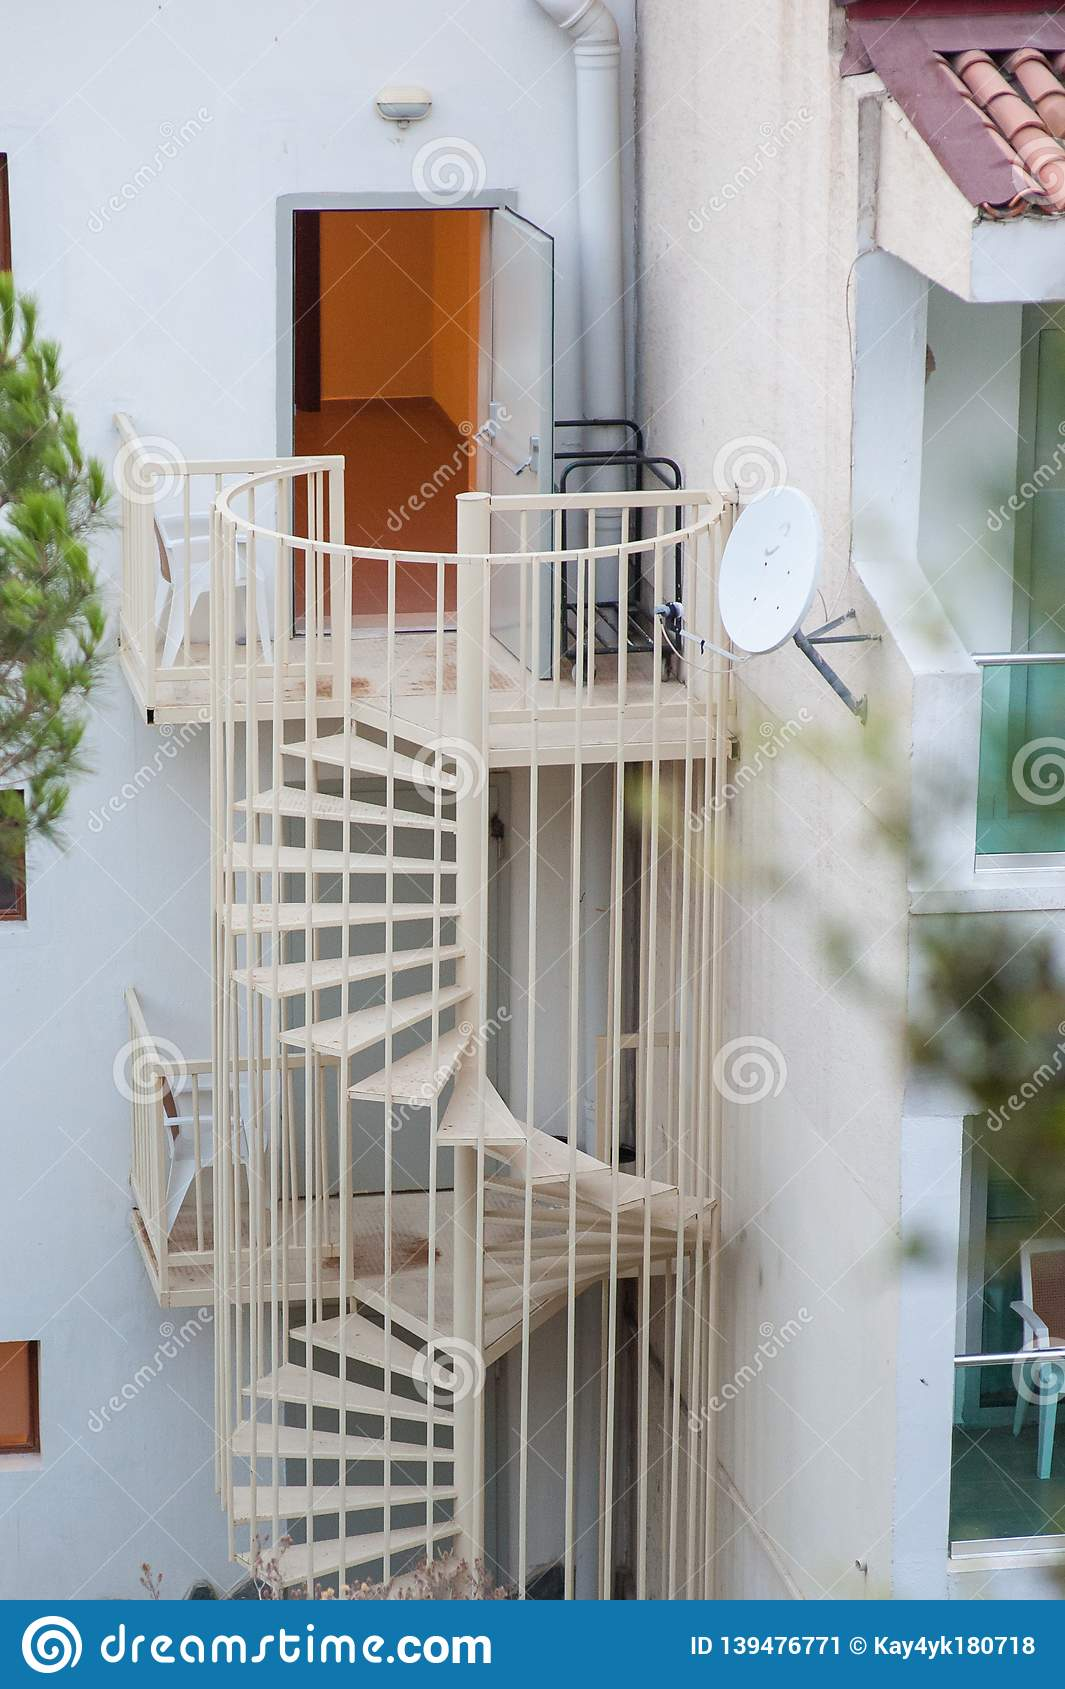 Spiral staircase in the street right outside the door